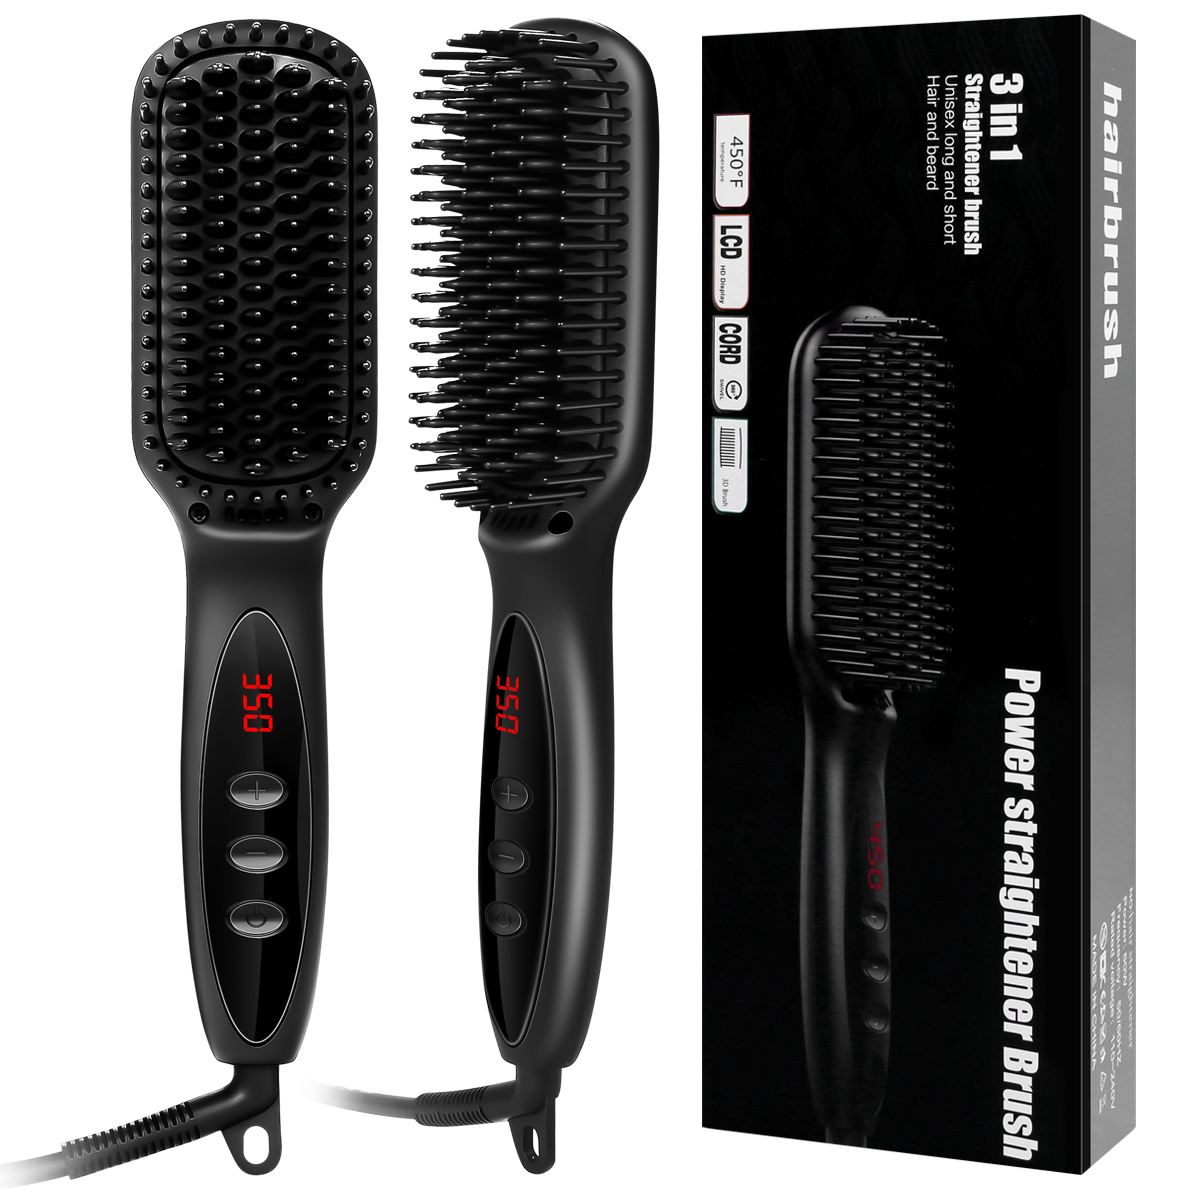 Electric Hair Straightening Brush Electric Ceramic Straightening Brush Wet & Dry Dual Use for Hair beard Hair Care Styling Tools